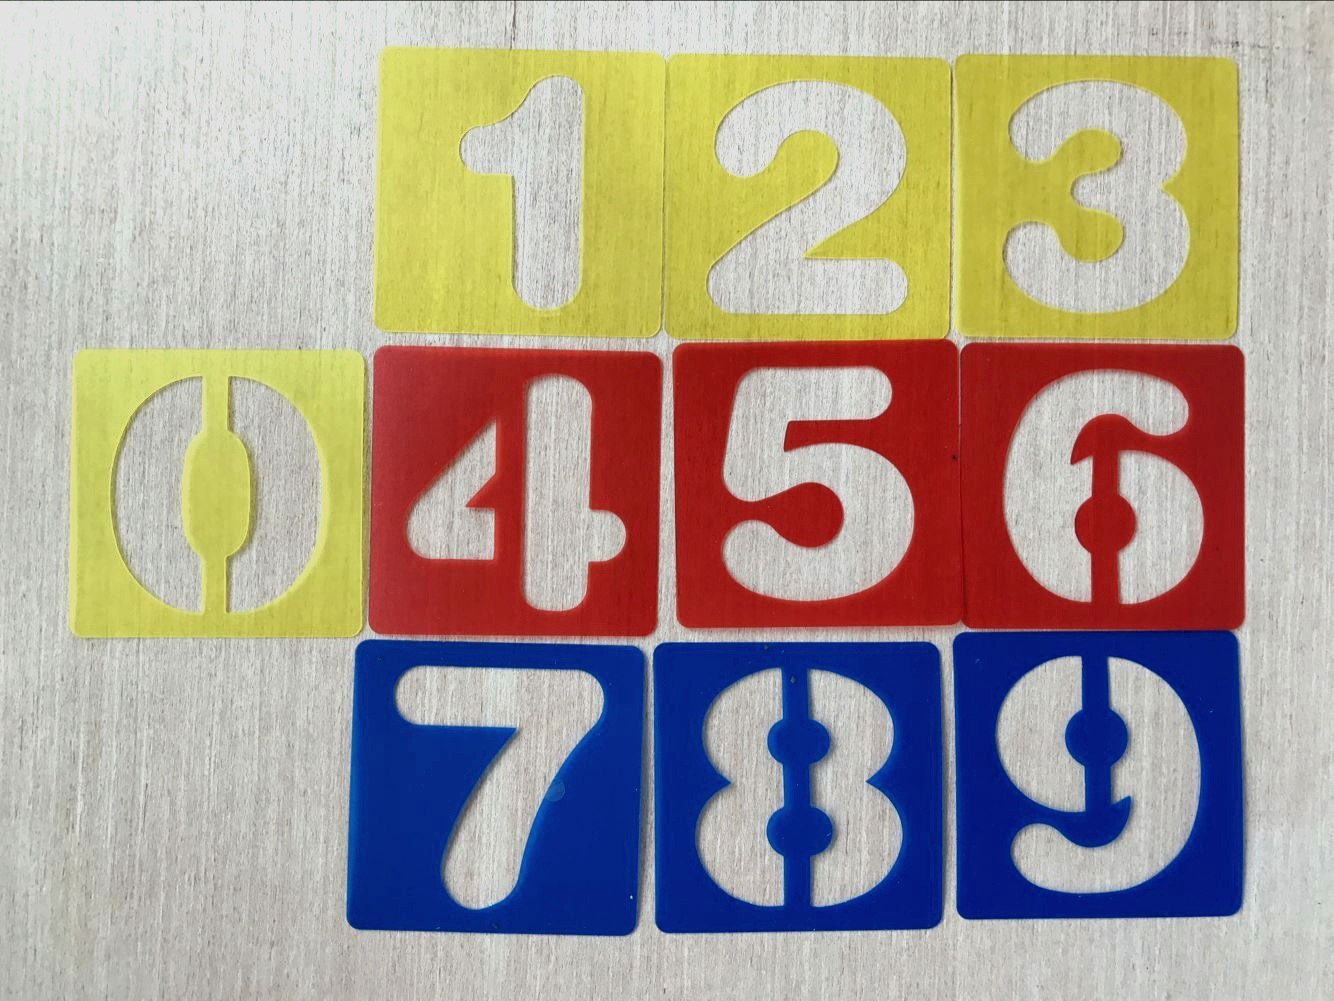 Amazon Hot Selling Hollow Out With Numbers Board Children Learning Tool Graffiti Painted Template Templates Ruler